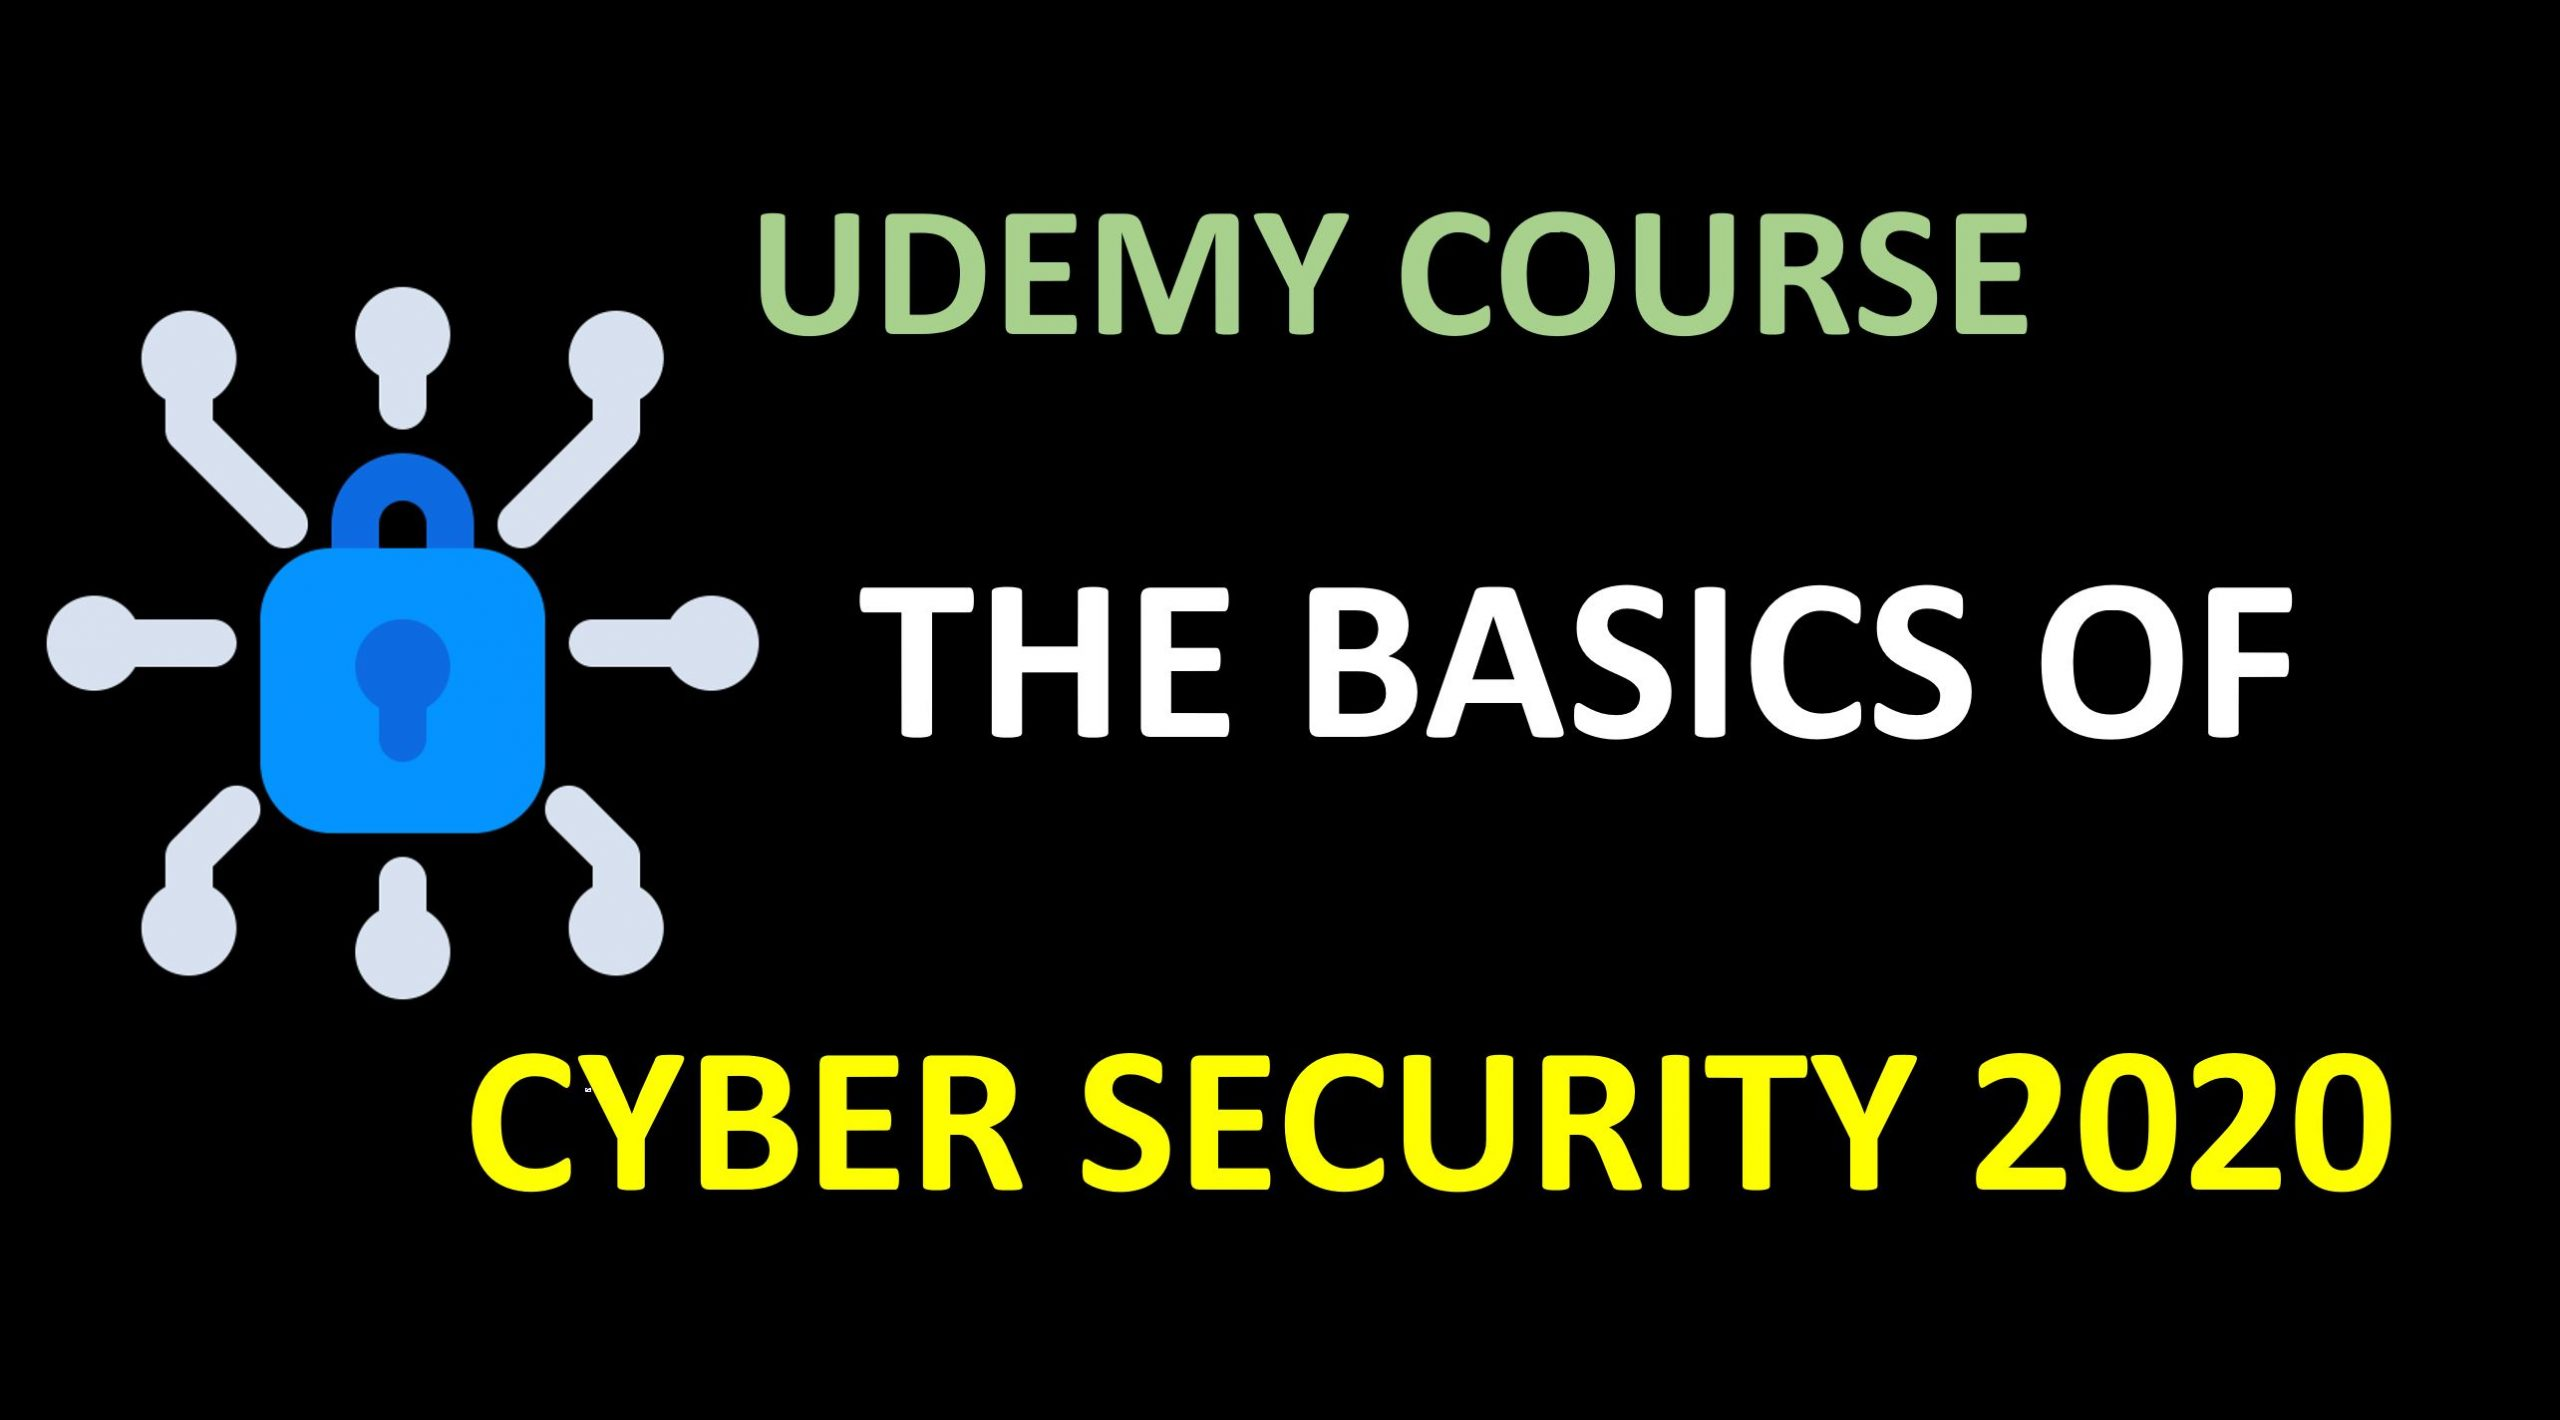 The Basics of Cyber Security 2020